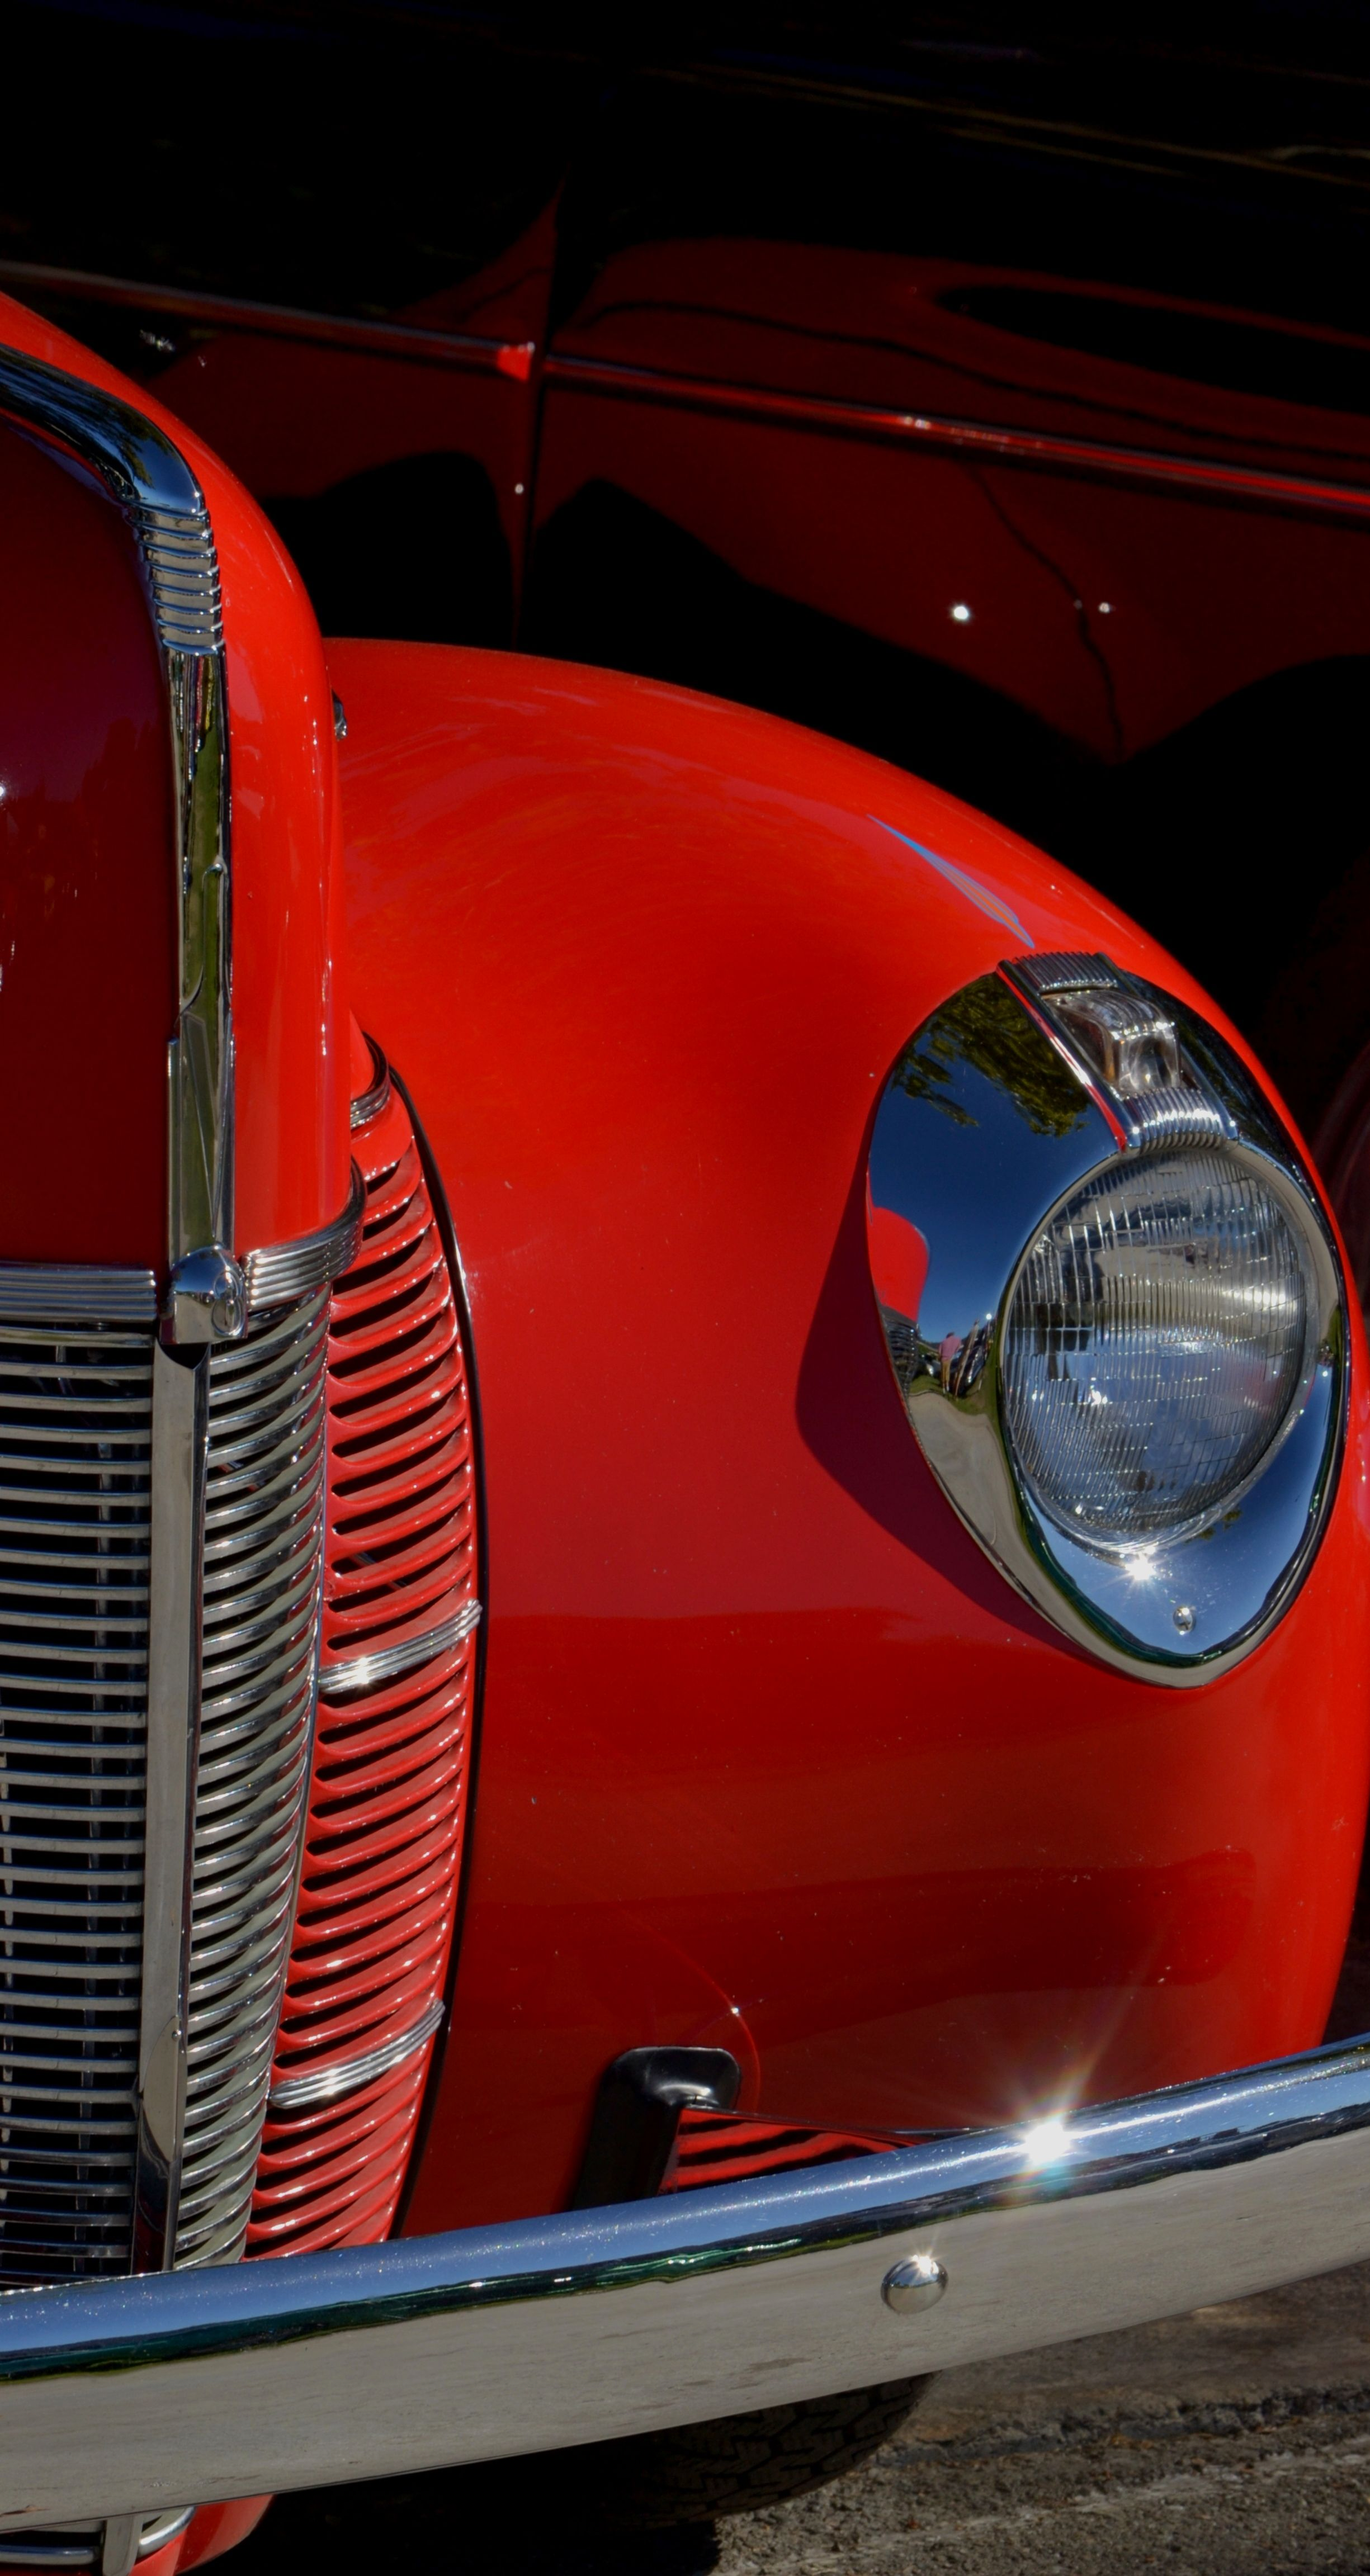 Great Pick Retro Cars Red Car Hot Pink Cars